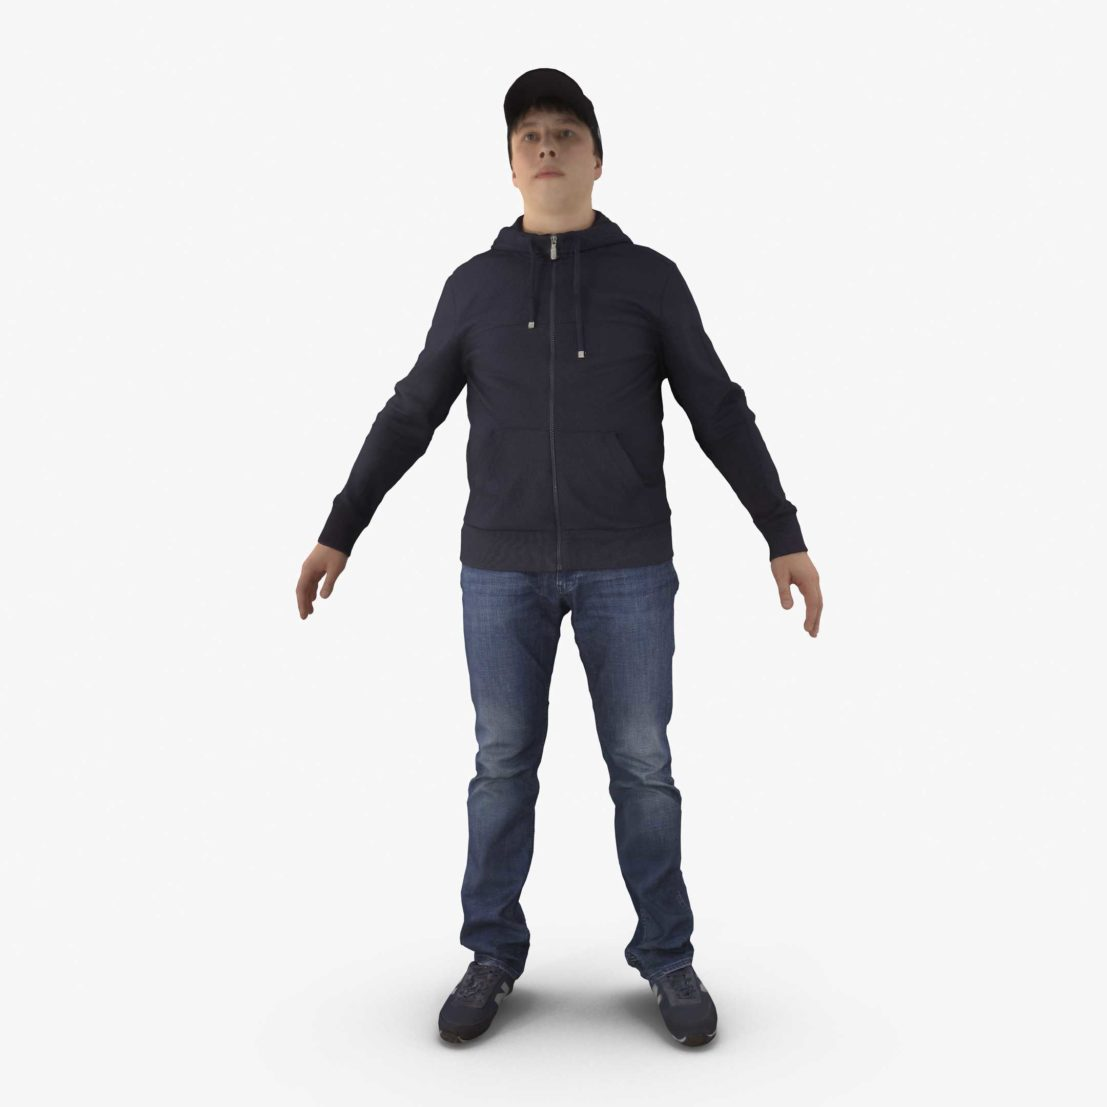 Casual Human APose 3D Model | 3DTree Scanning Studio